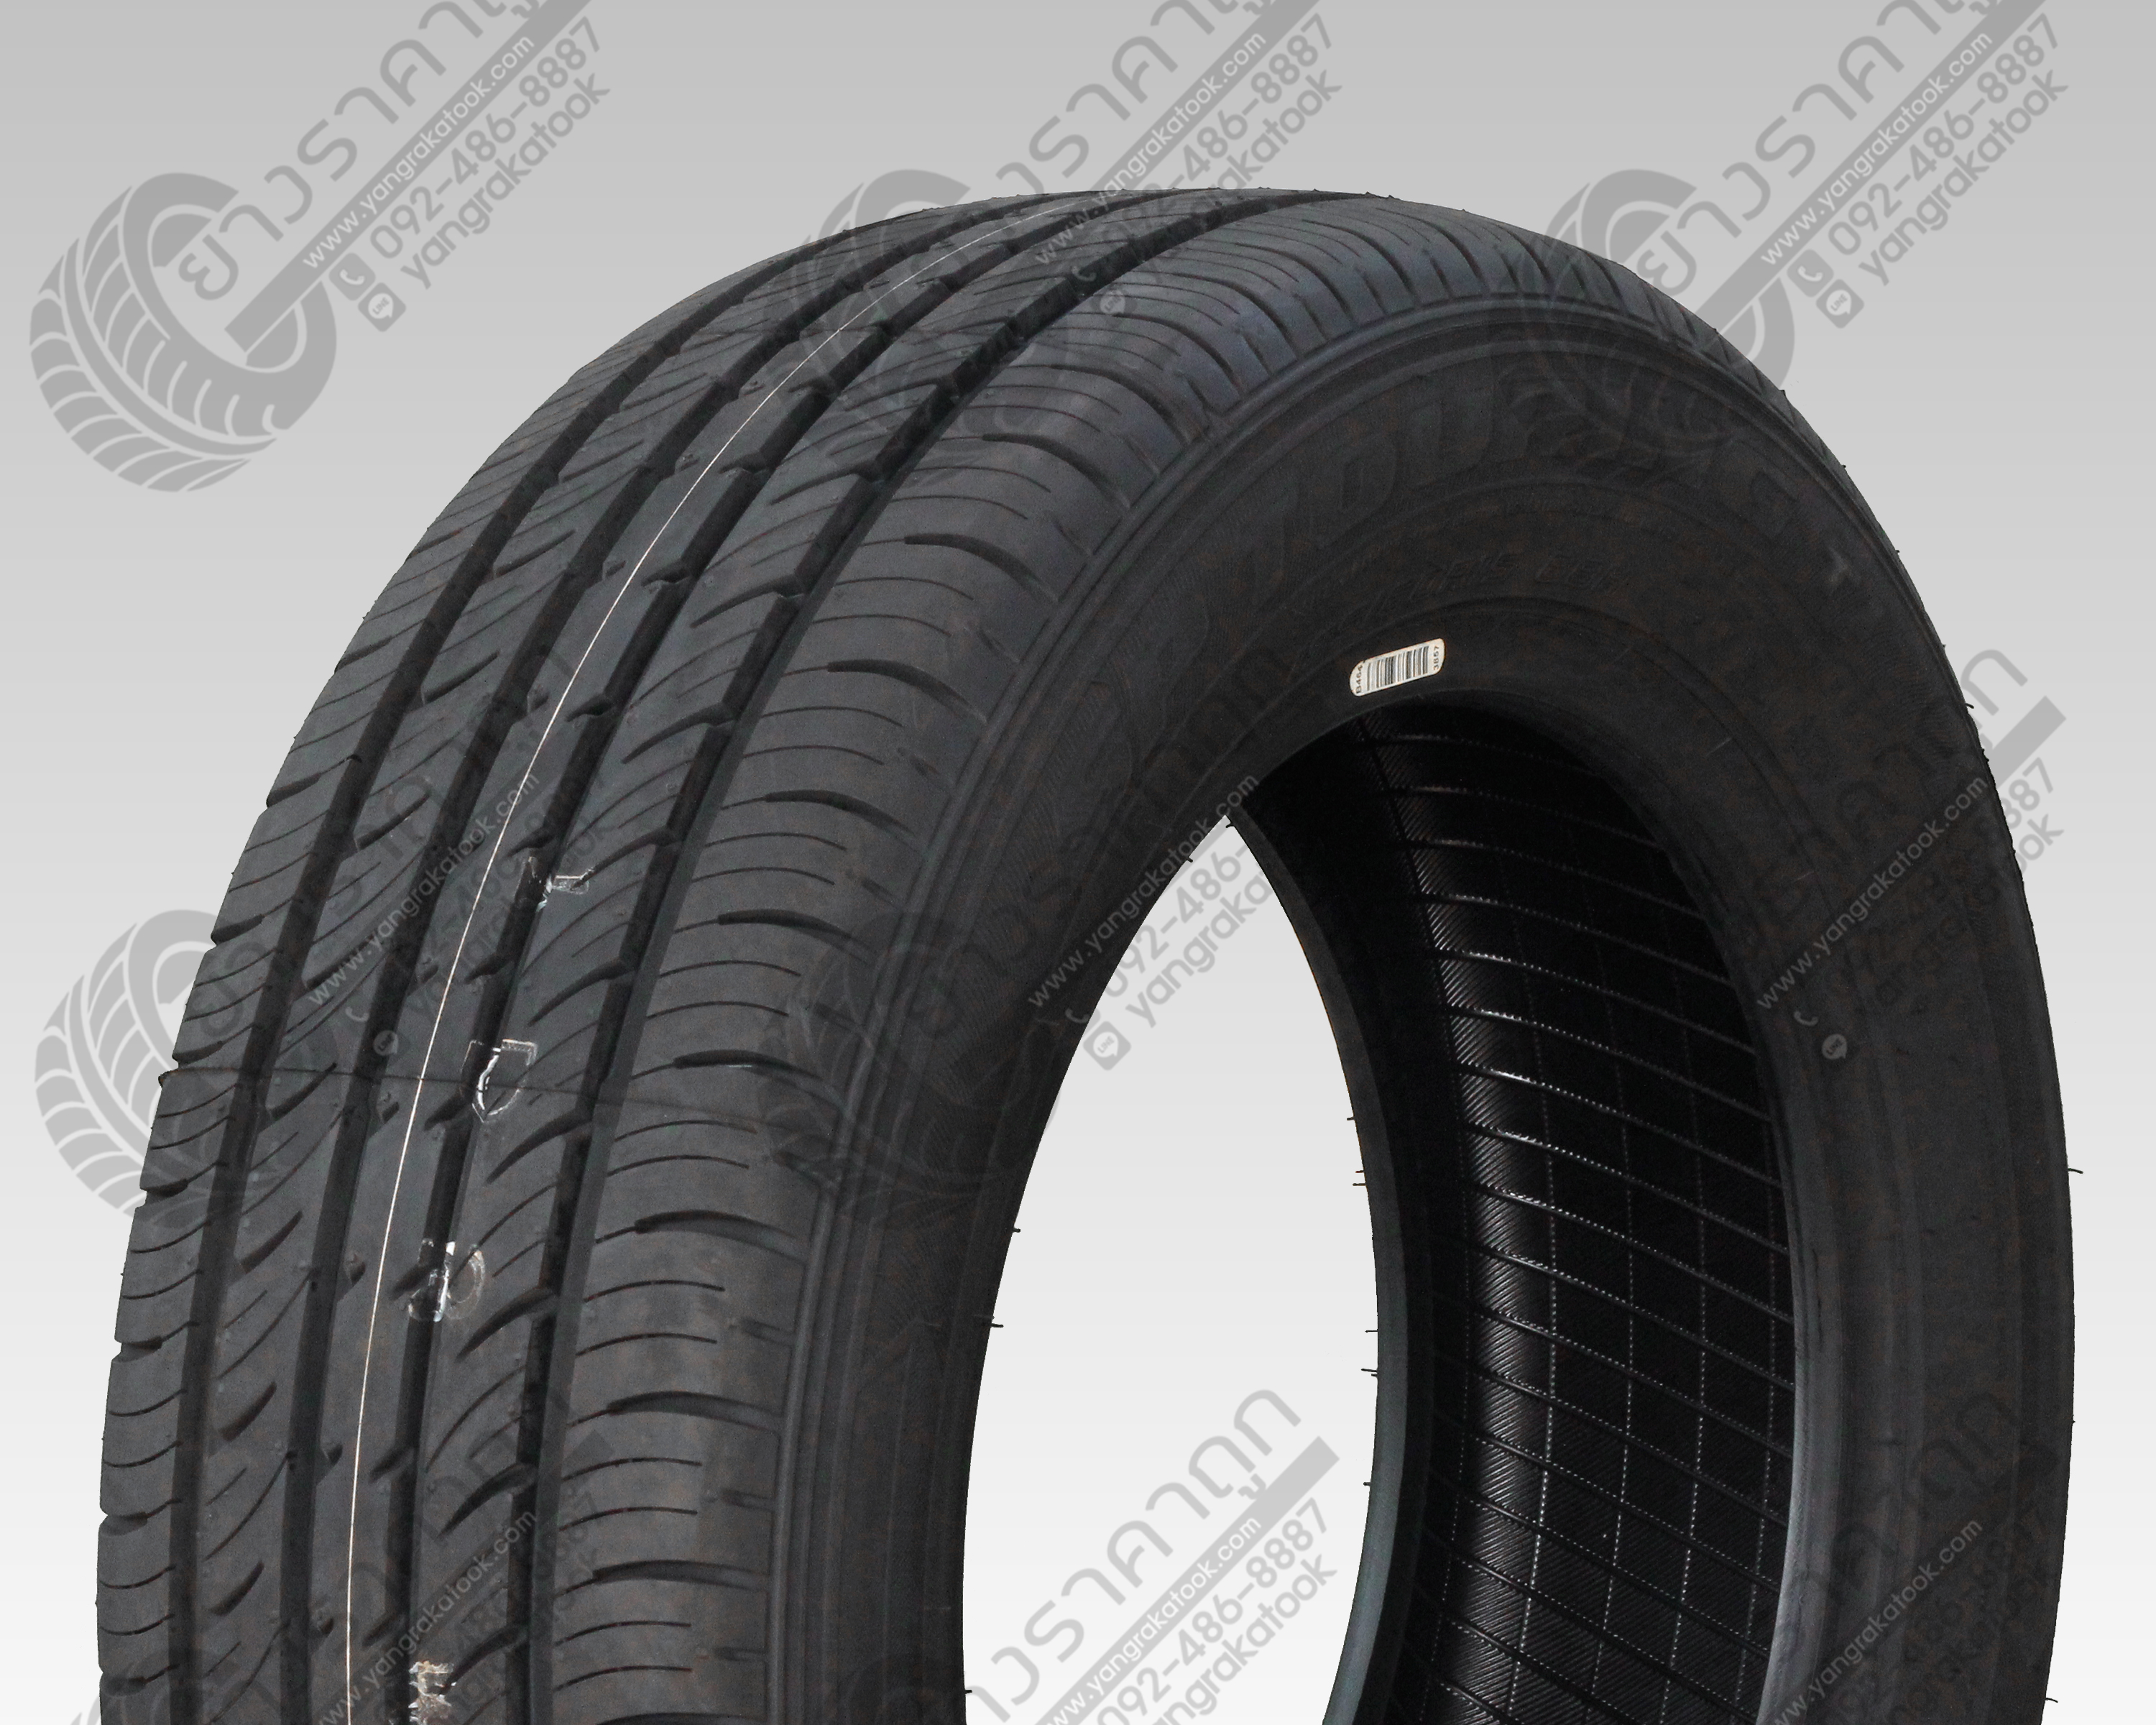 Dunlop Touring T1 195/65R15 ปี15